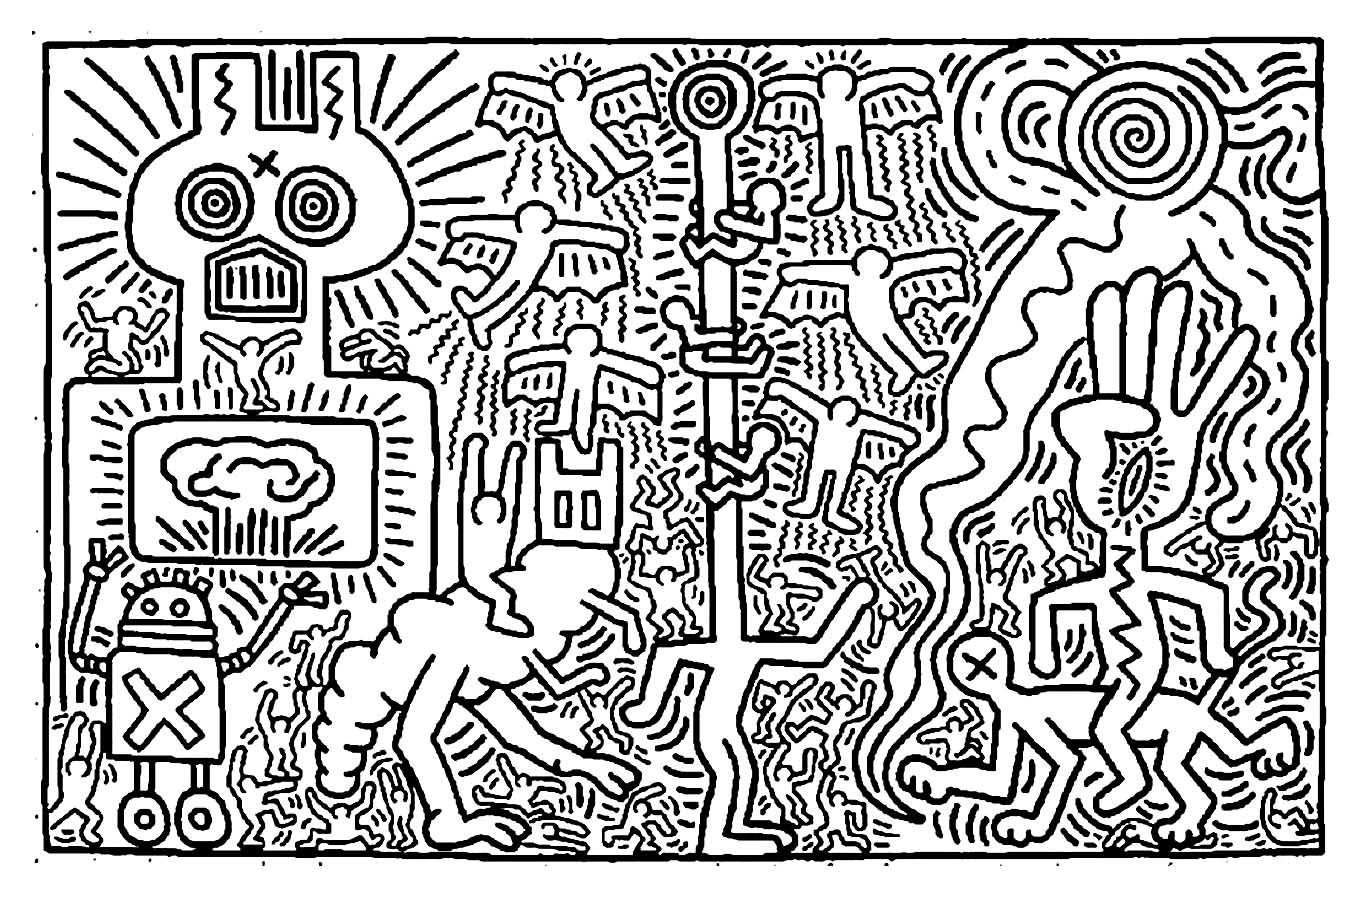 Coloring Adult Keith Haring 2 From The Gallery Art